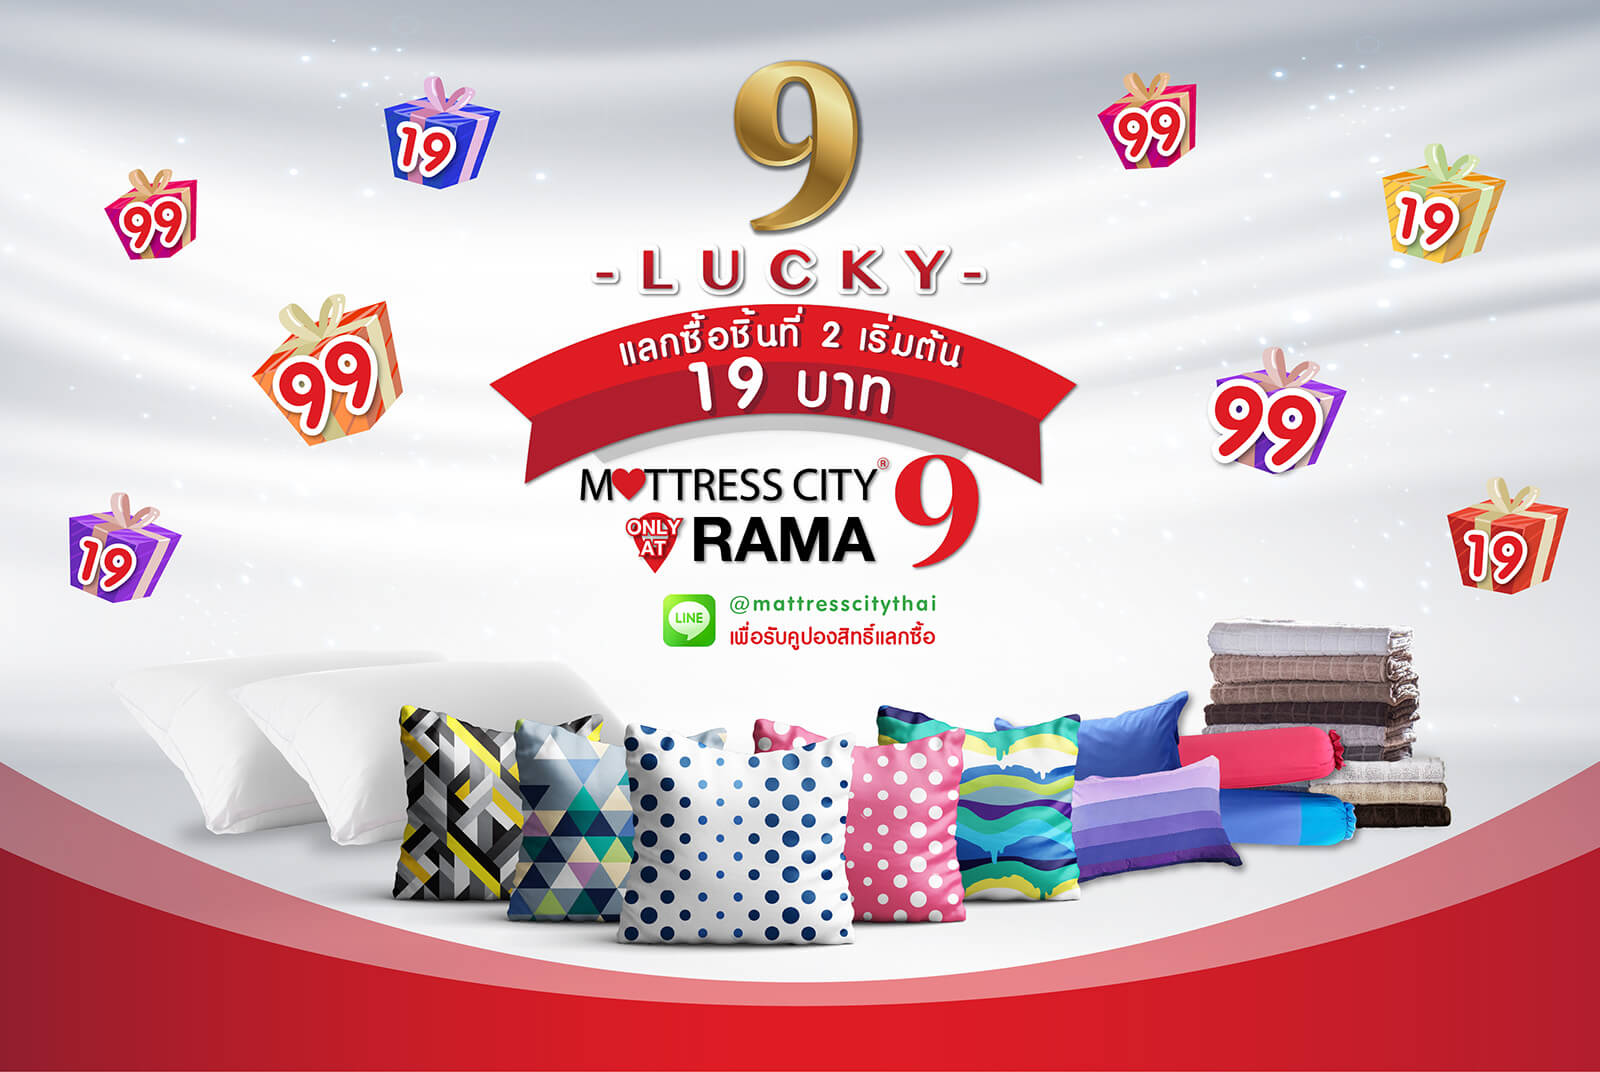 Mattress City Rama 9 - Lucky 9 Promotion